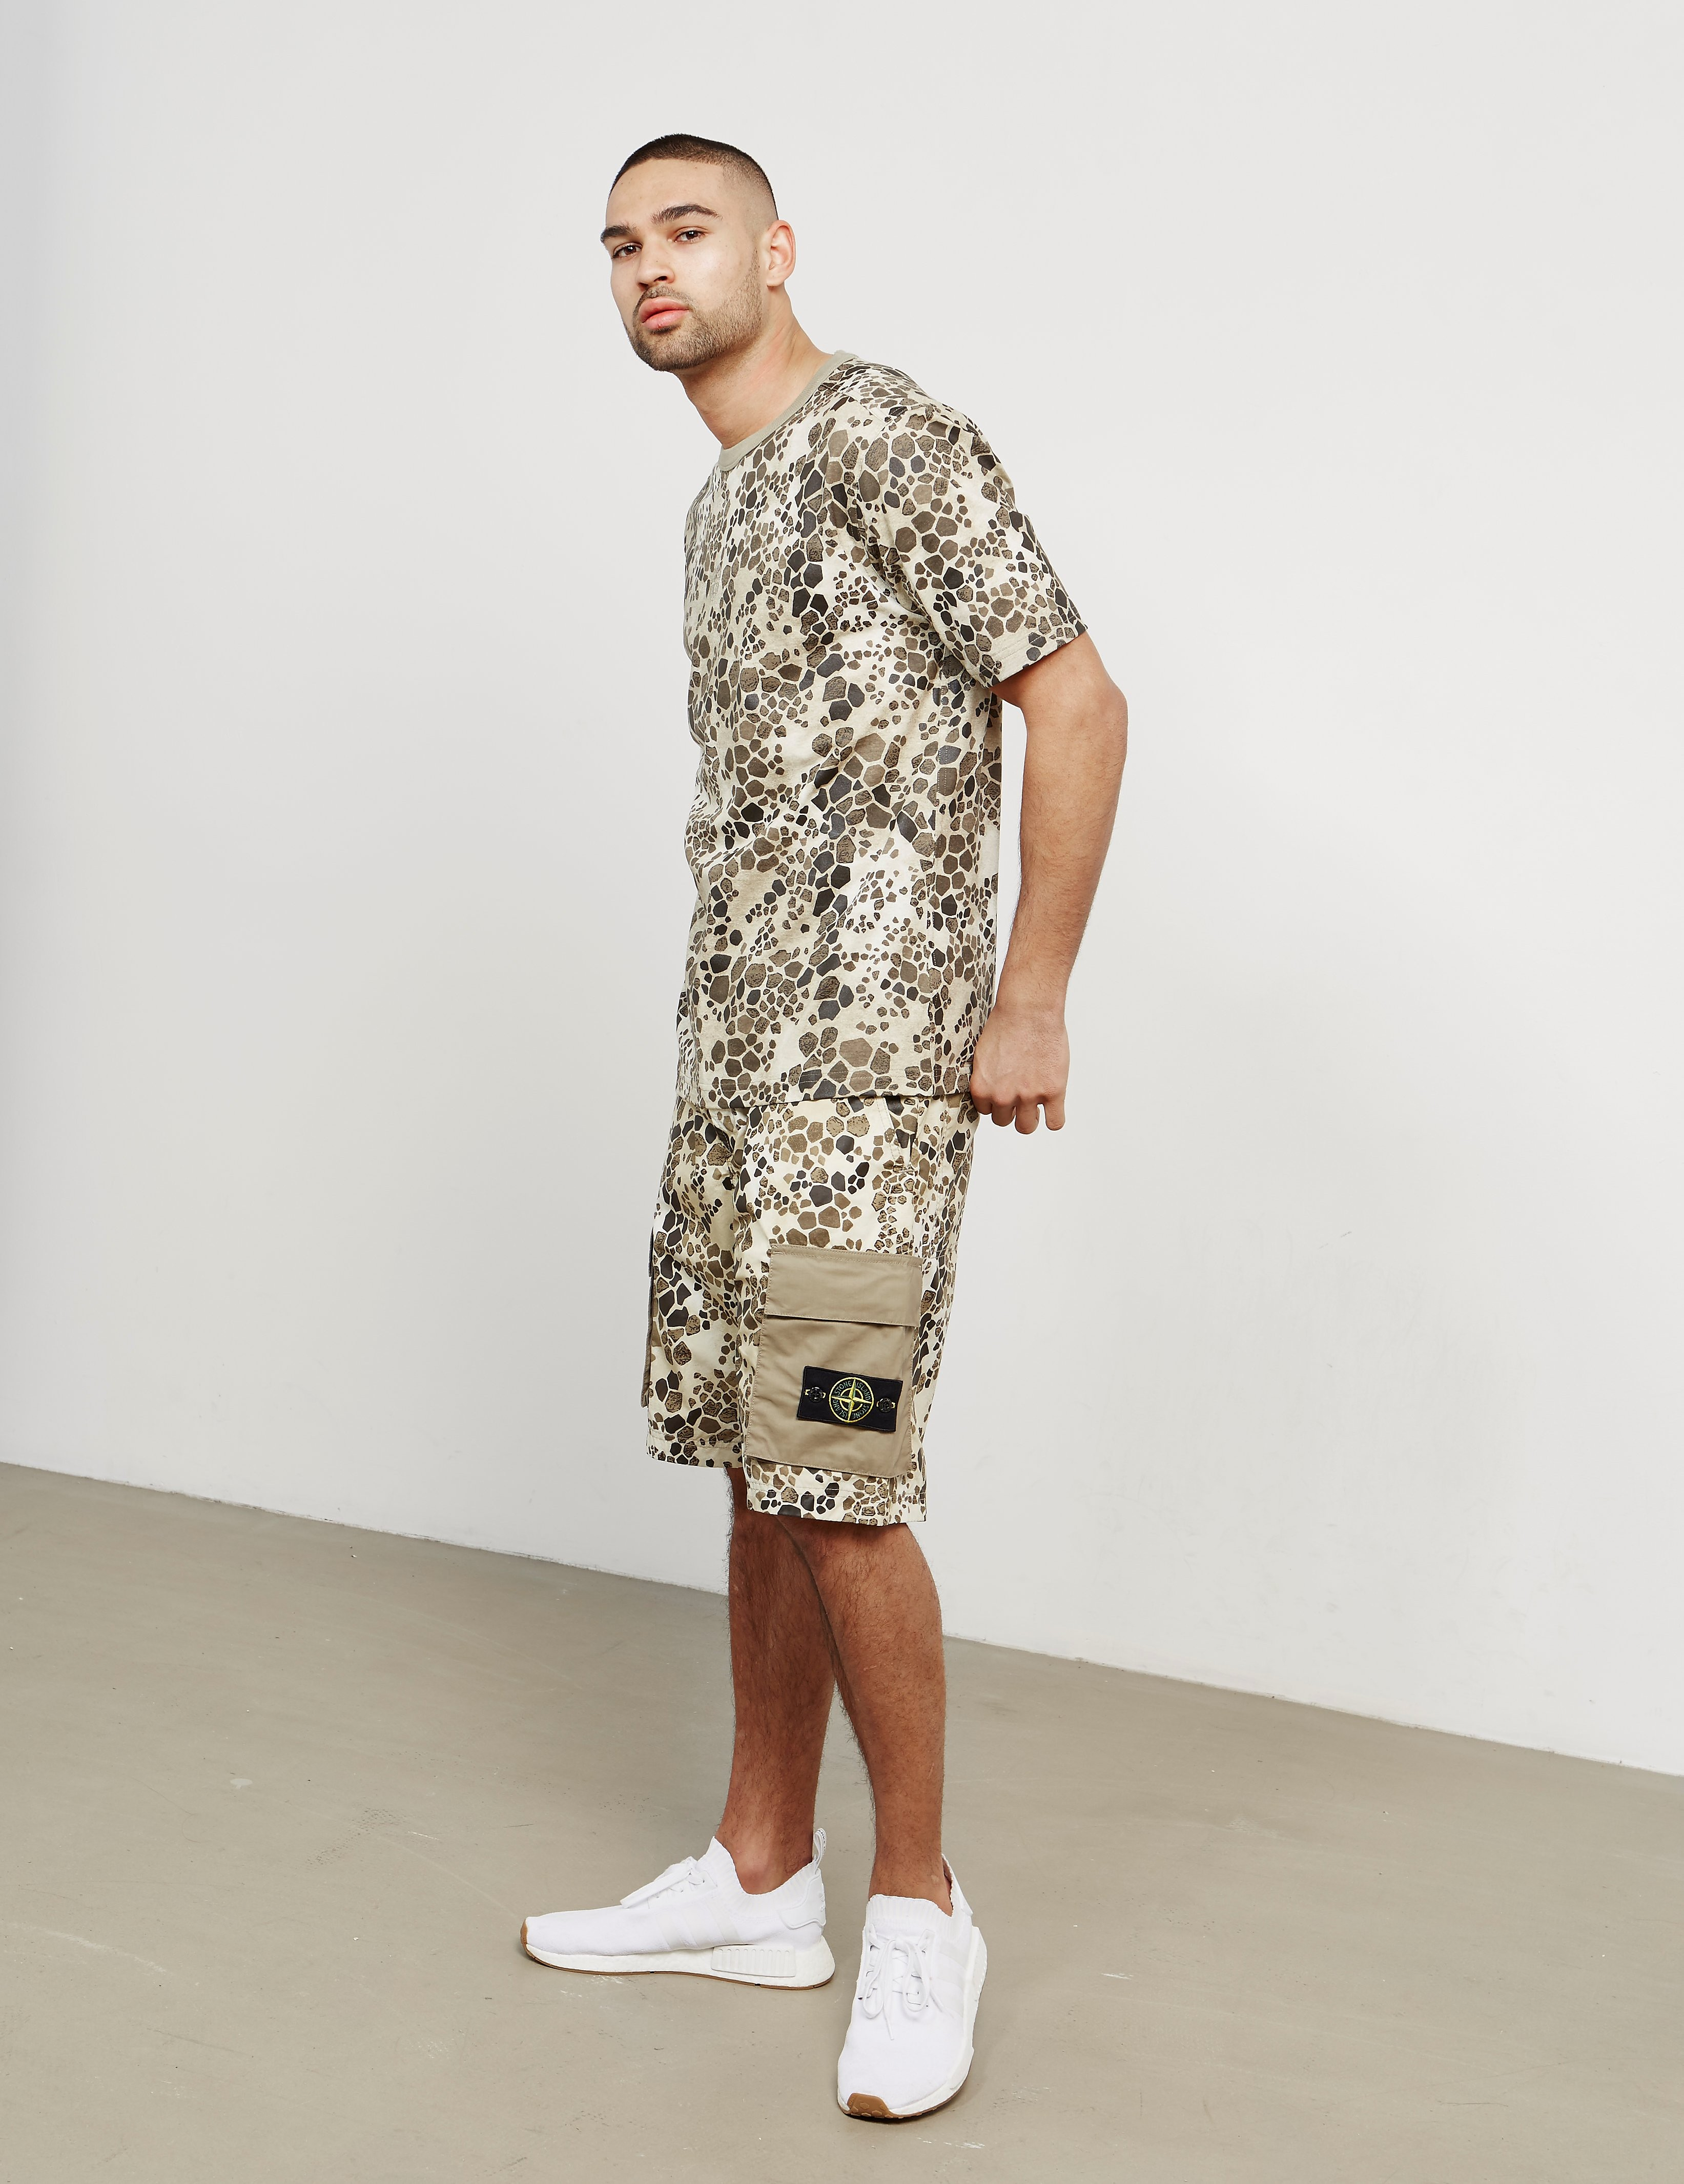 Stone Island Alligator Camo T-Shirt